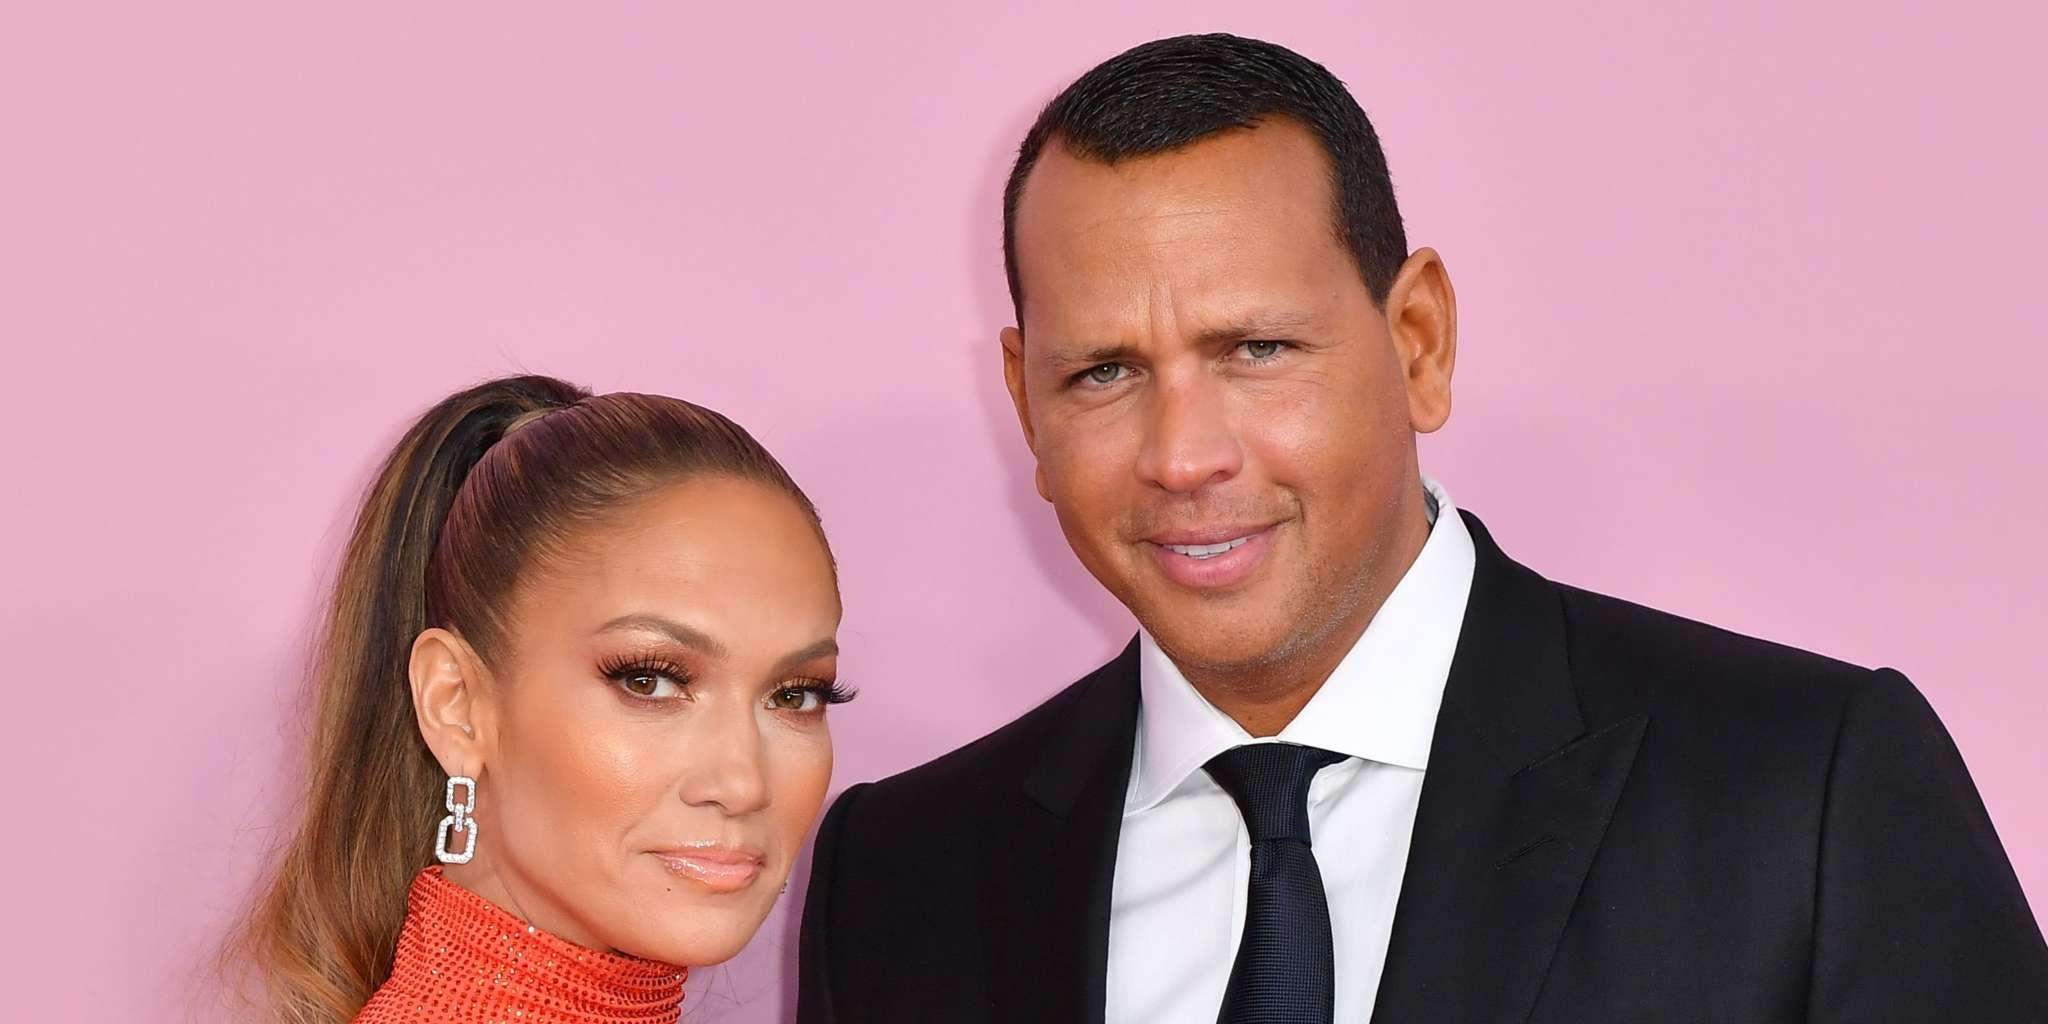 Jennifer Lopez And Alex Rodriguez - Inside Their Wedding Plans After Original Date Got Cancelled Due To The Pandemic!